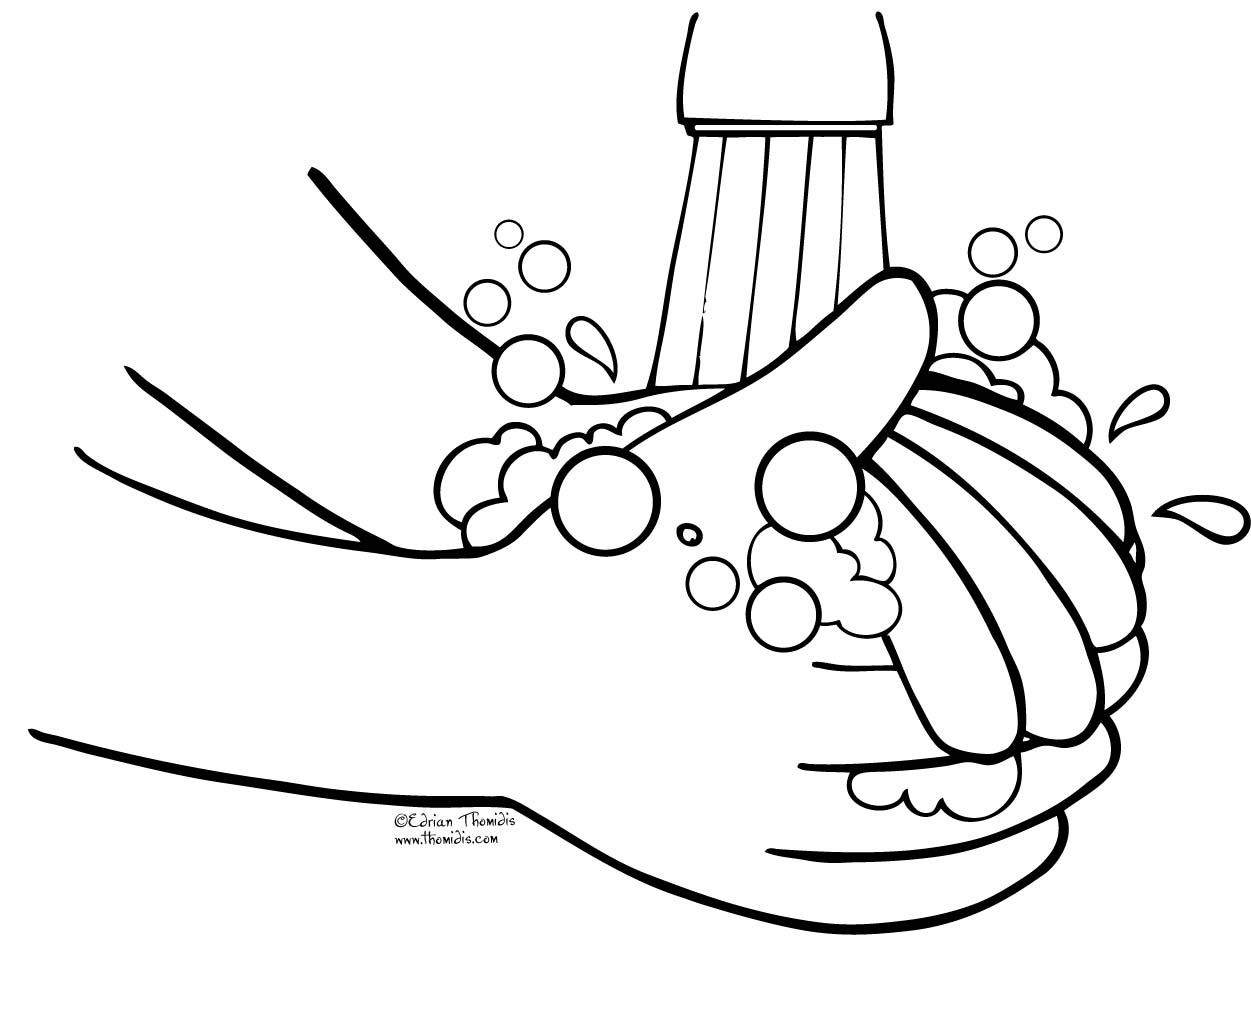 wash your hands coloring page printable pages  Hand washing